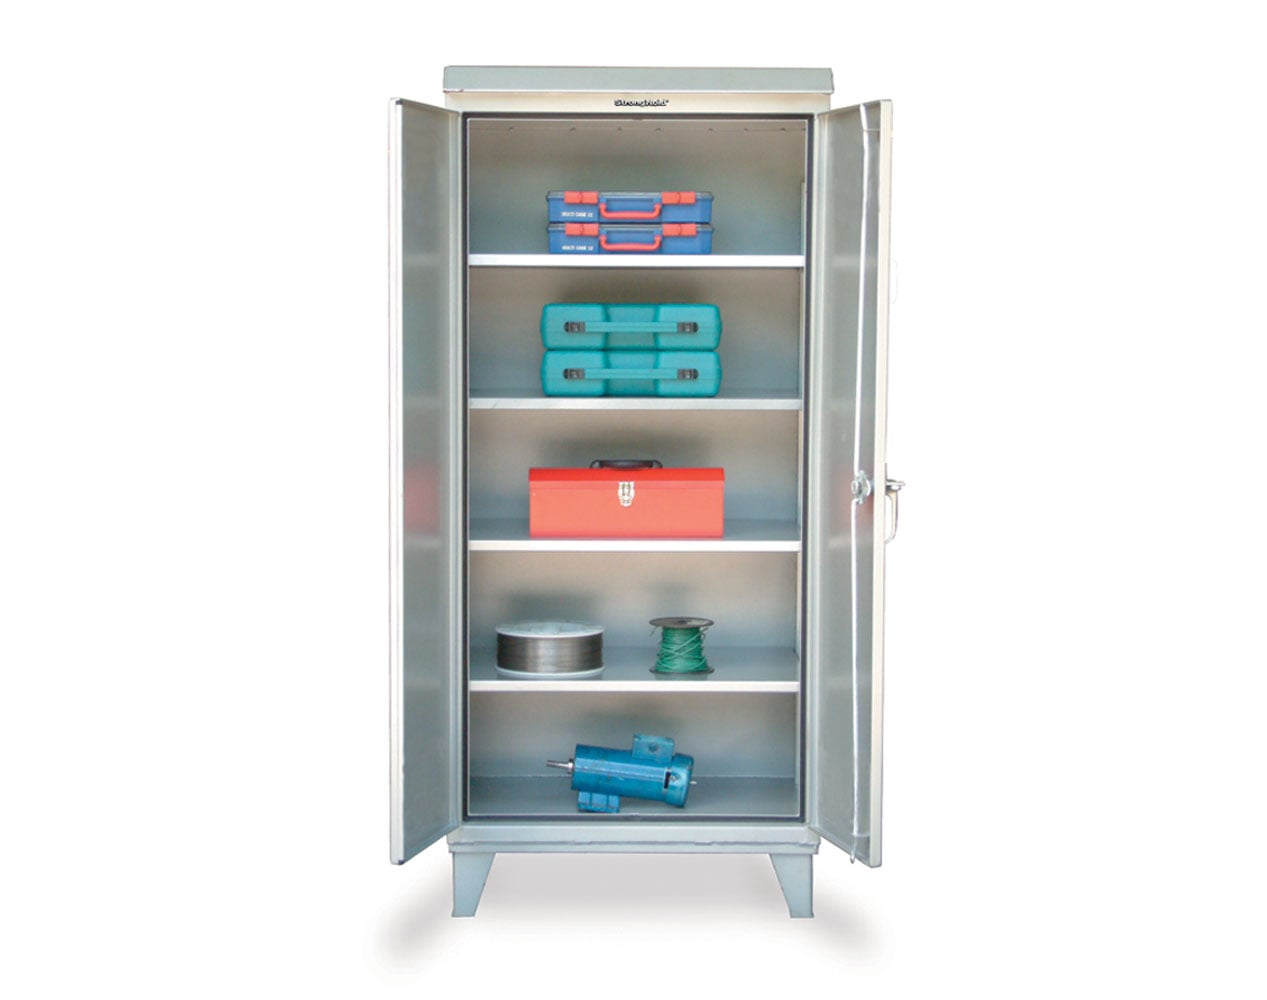 Extreme Duty 12 GA Stainless Steel Weather-Resistant Cabinet with 4 Shelves – 60 In. W x 24 In. D x 79¾ In. H